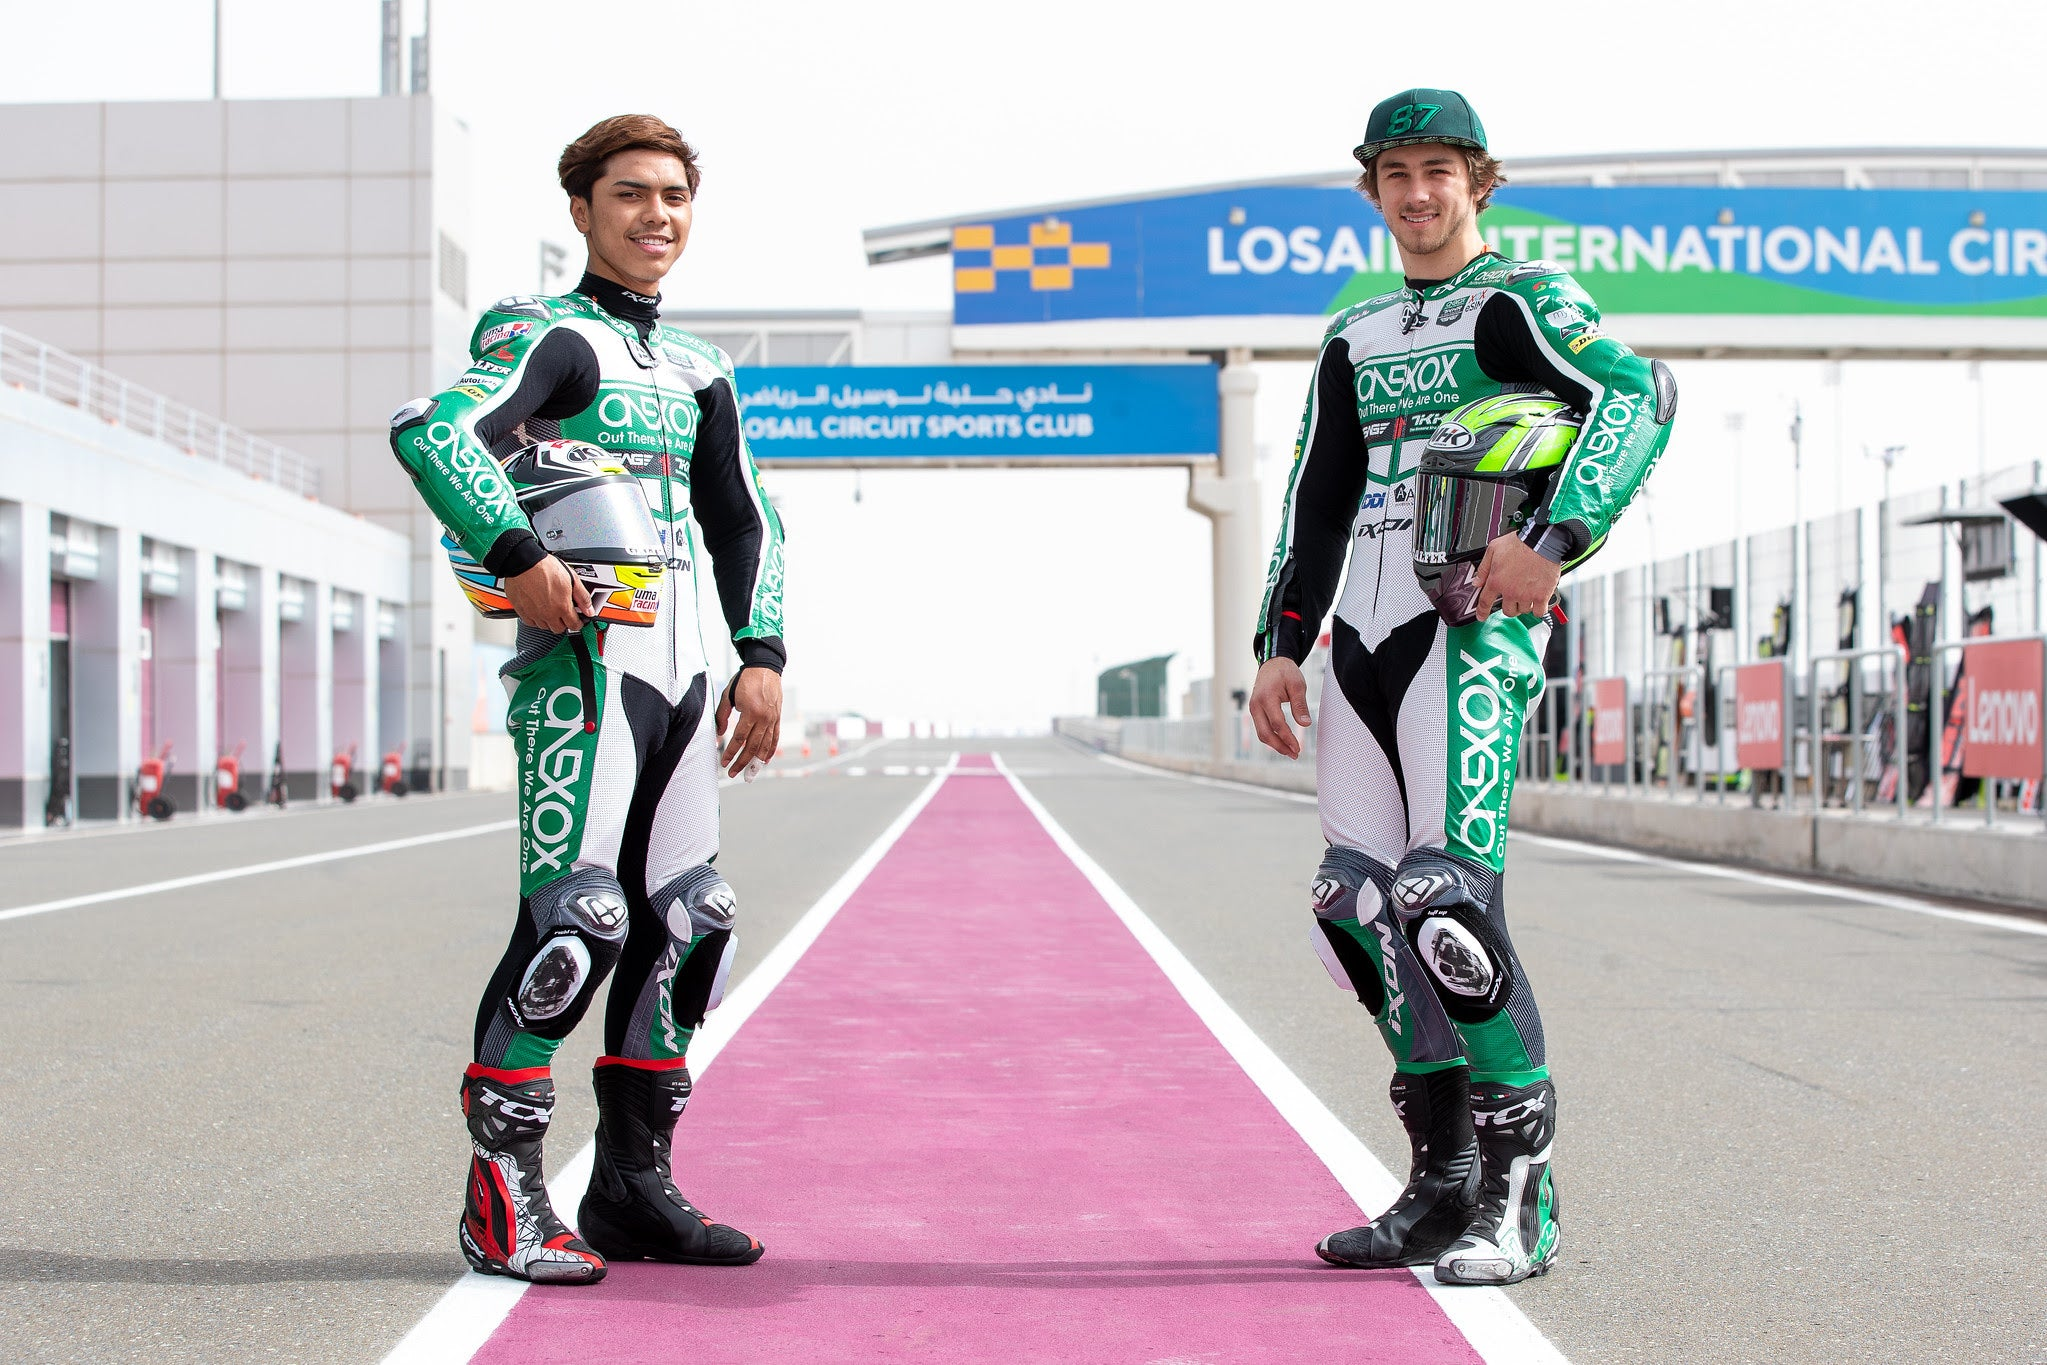 Gardner & Kasma Daniel ready for the return of the Moto2 World Championship